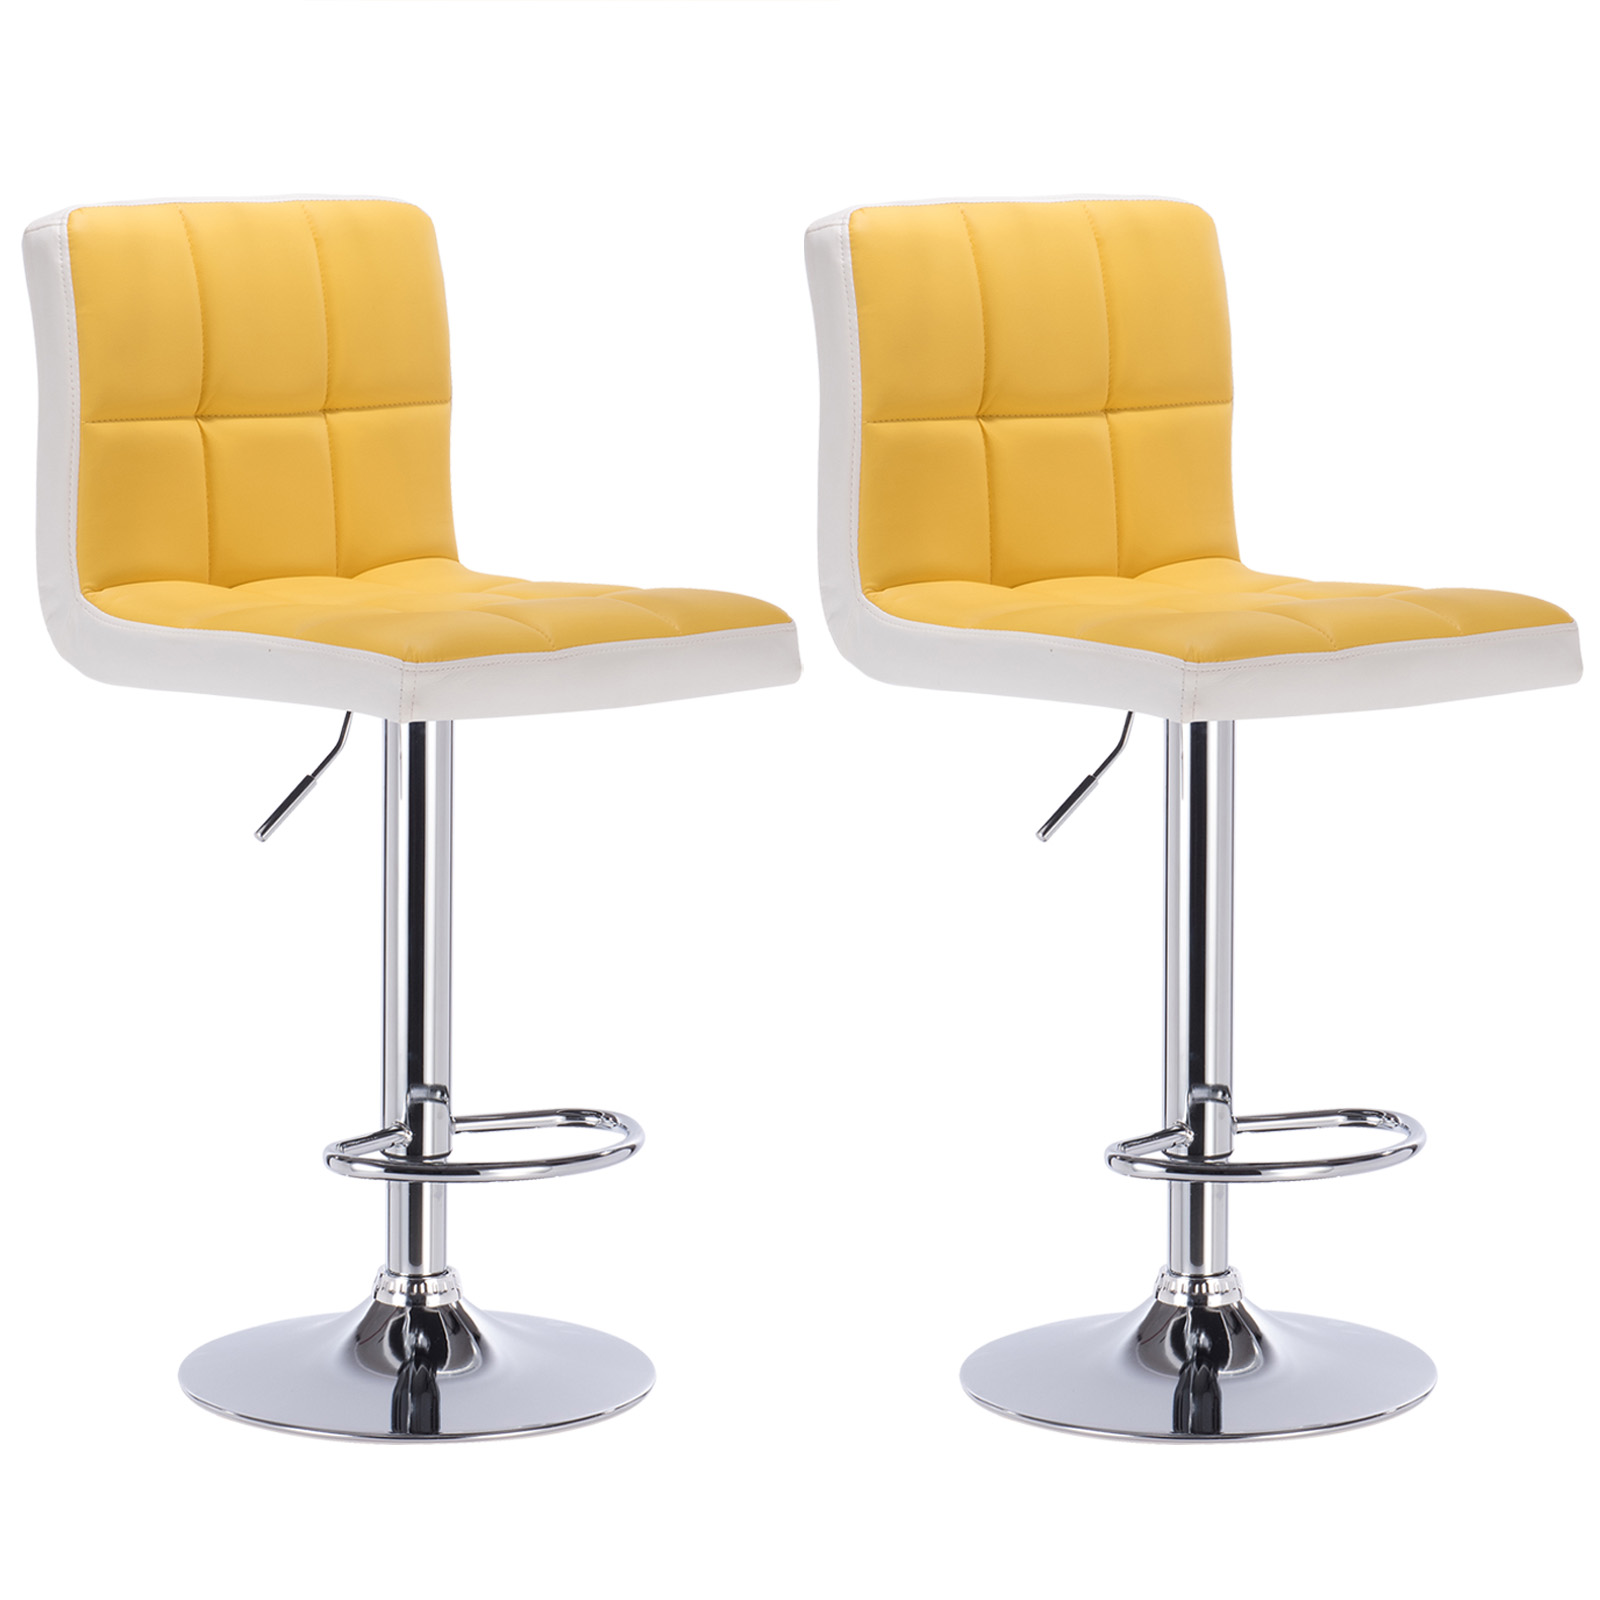 Bar Stools Swivel Kitchen Breakfast Bar Stool Set Of 2 Chairs Adjustable U090 Ebay